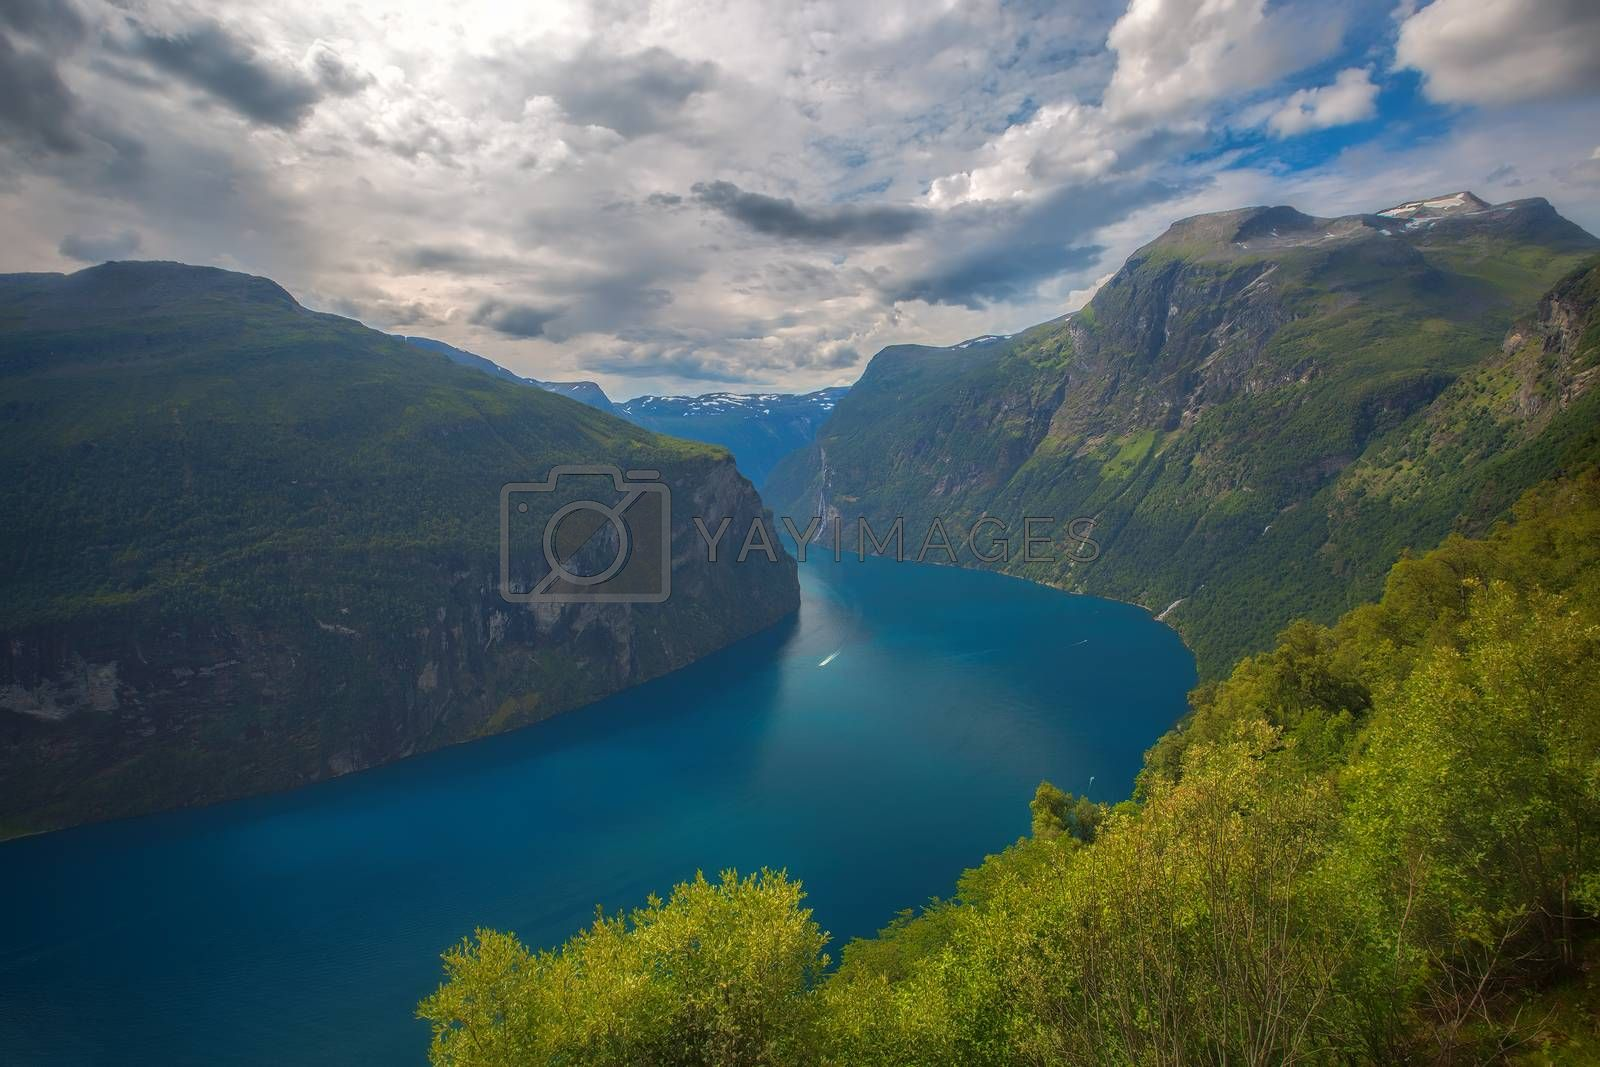 The Geiranger fjord in Norway, surrounded by high mountains